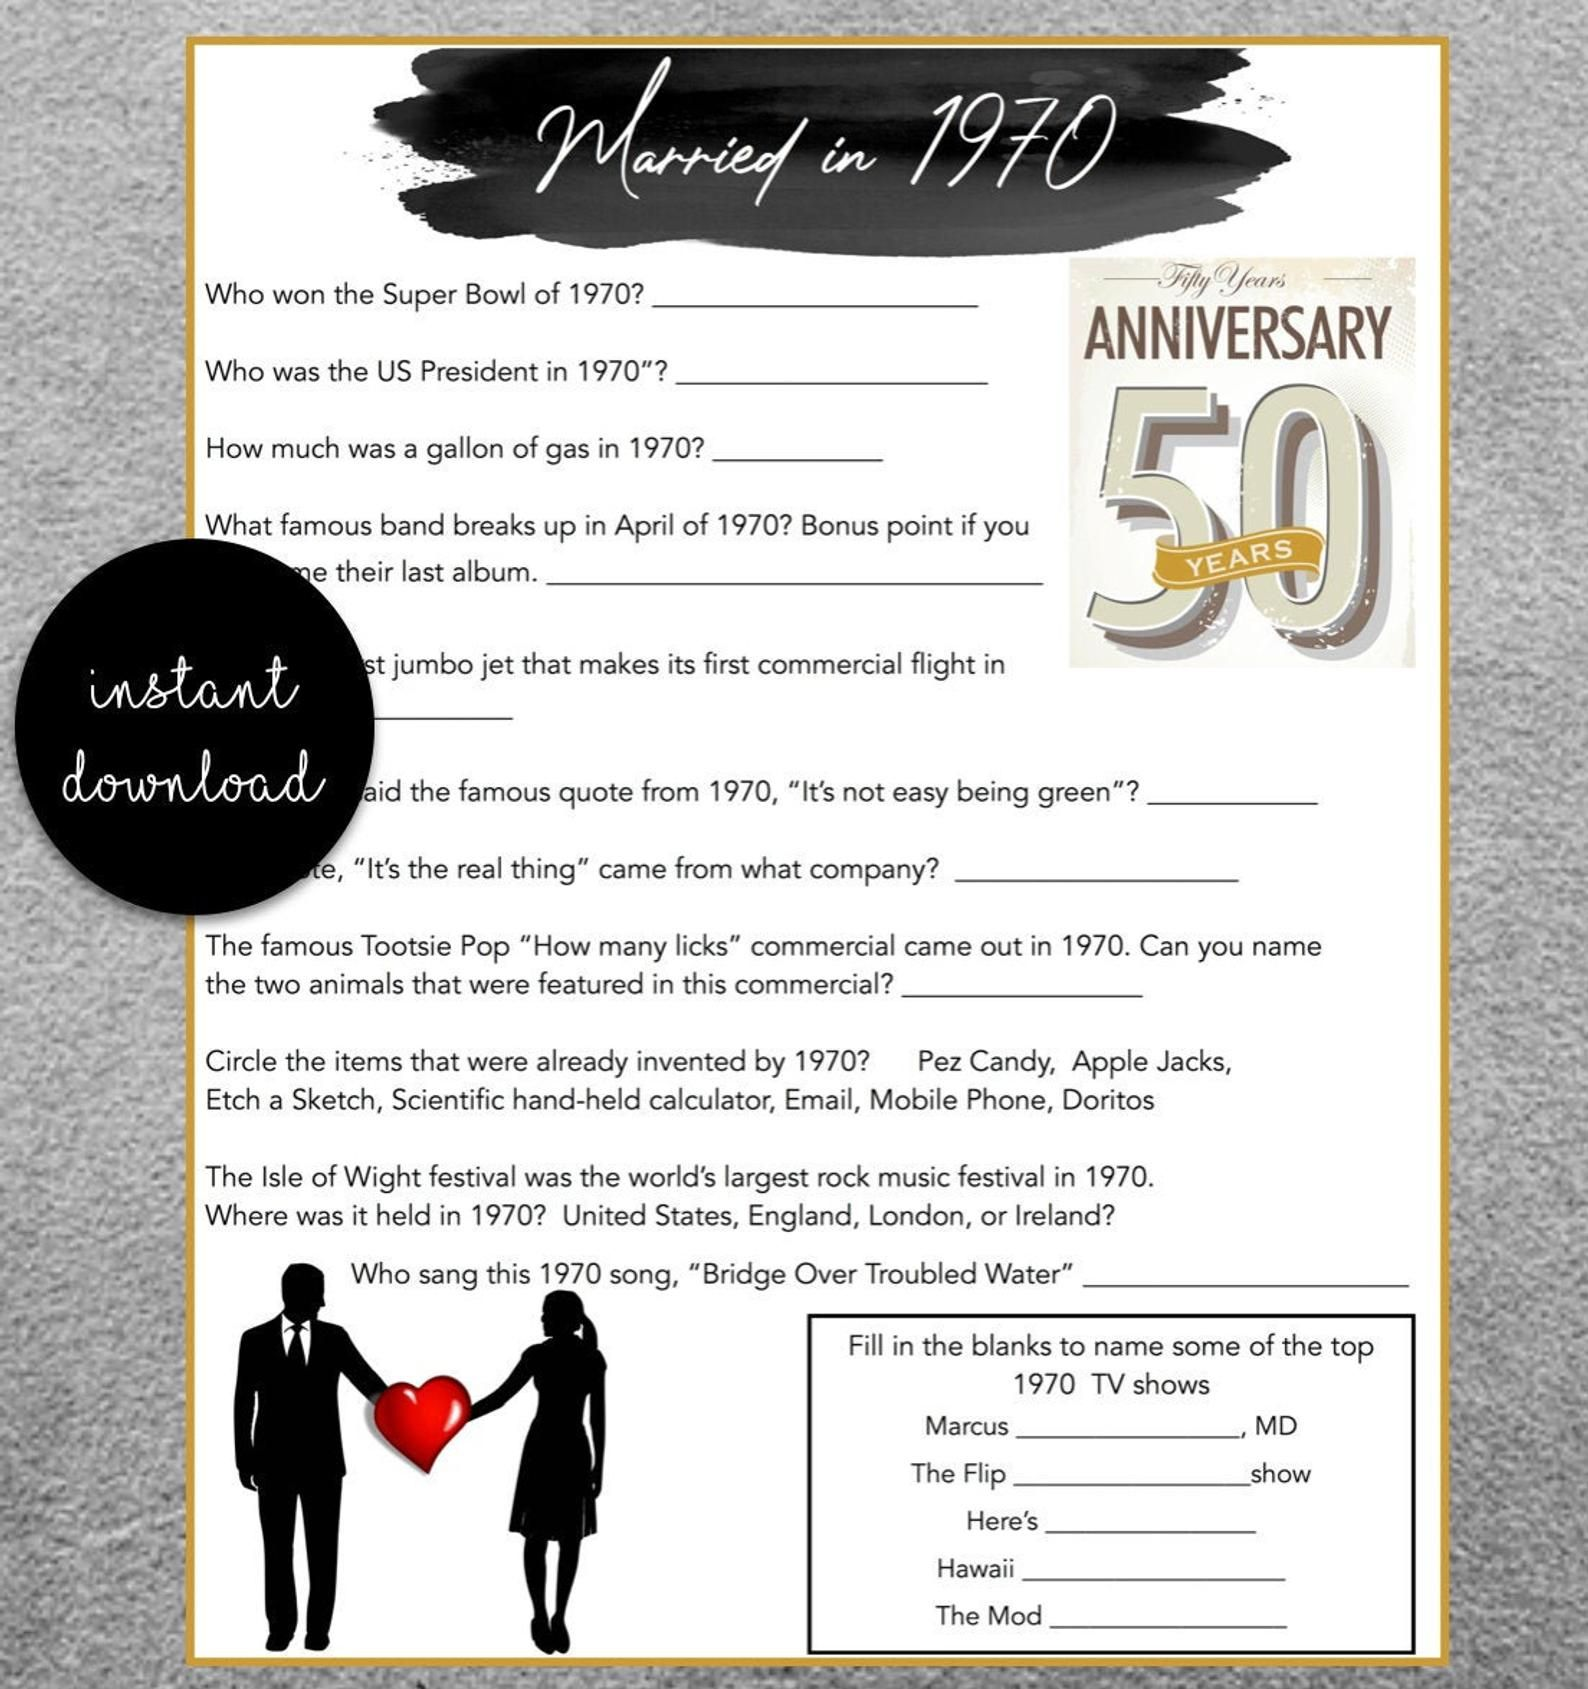 50th Wedding Anniversary Party Game Questions From 1970 In 2020 50th Wedding Anniversary Party Wedding Anniversary Party Games Anniversary Party Games